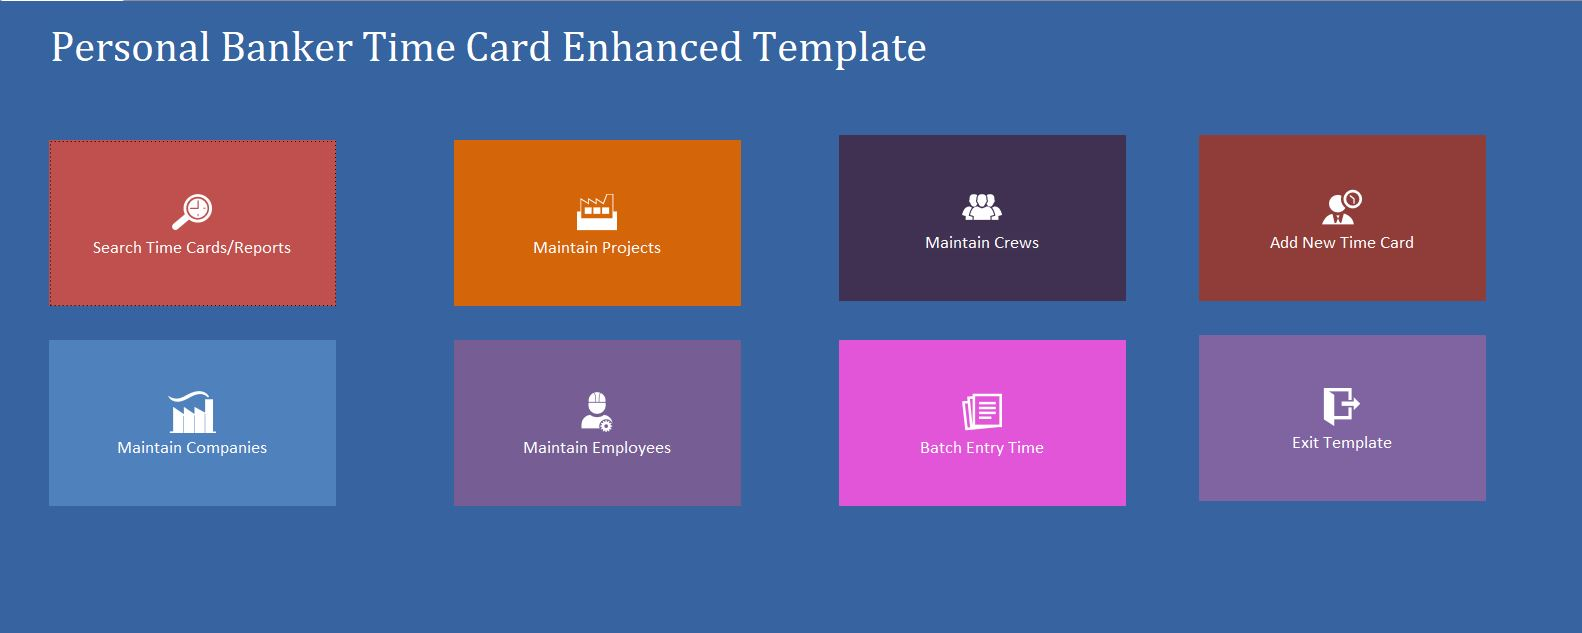 Enhanced Personal Banker Time Card Template | Time Card Database